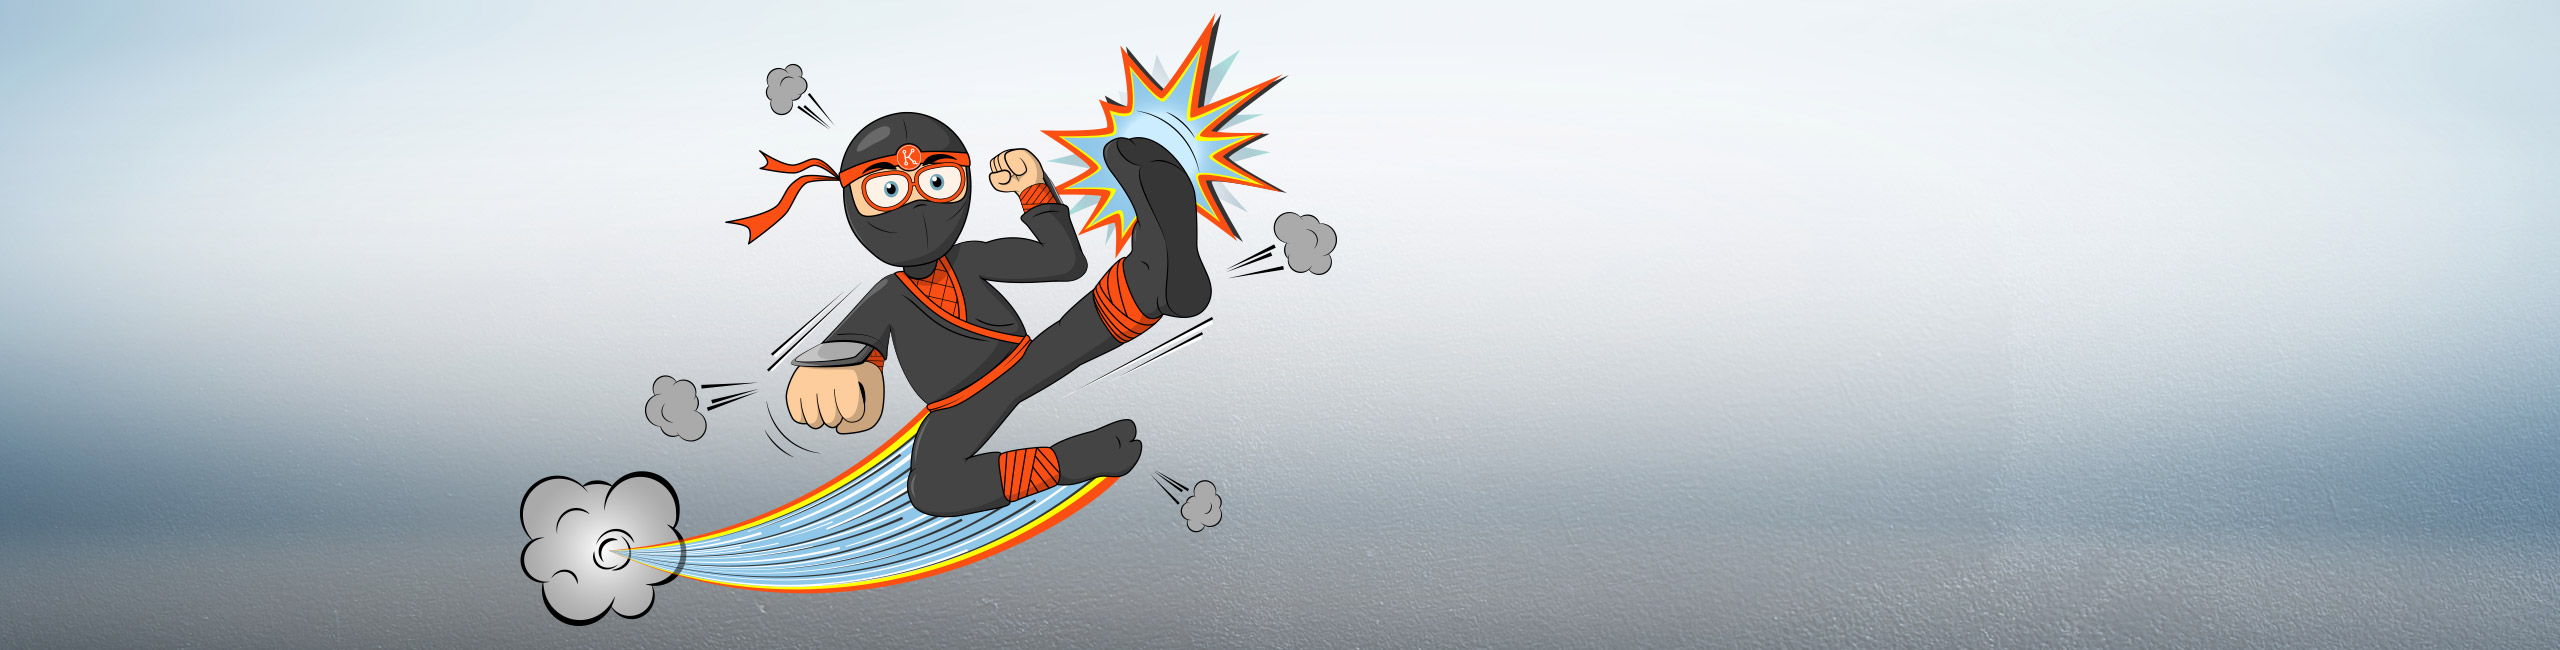 Become an IT Ninja with KACE and find your path to endpoint enlightenment.